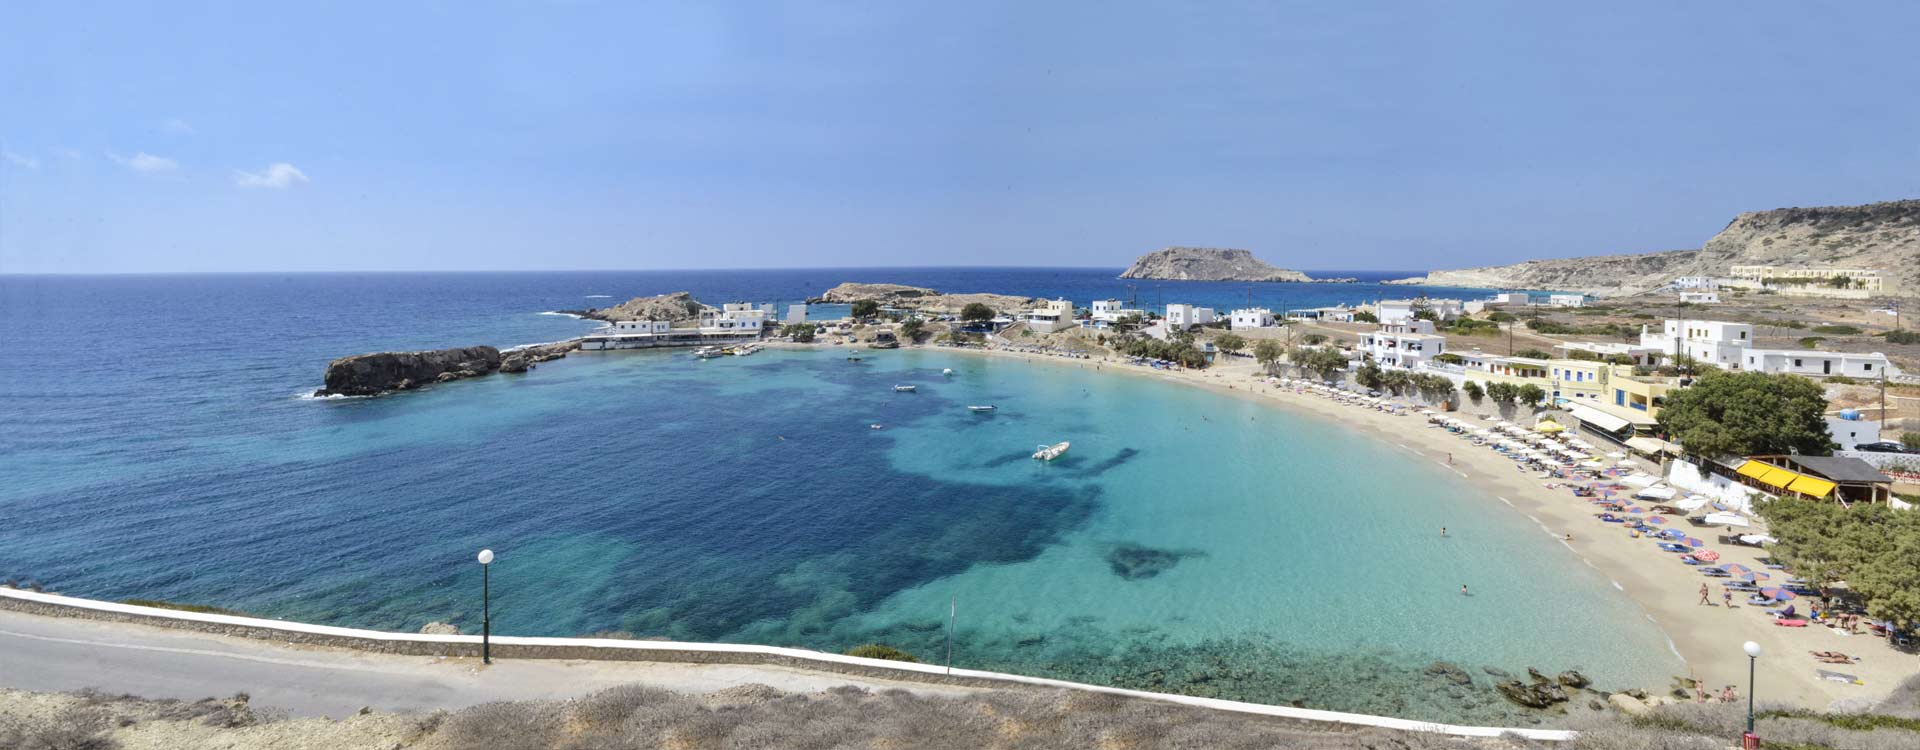 Welcome to Lefkos Studios and Apartments, Lefkos, Karpathos